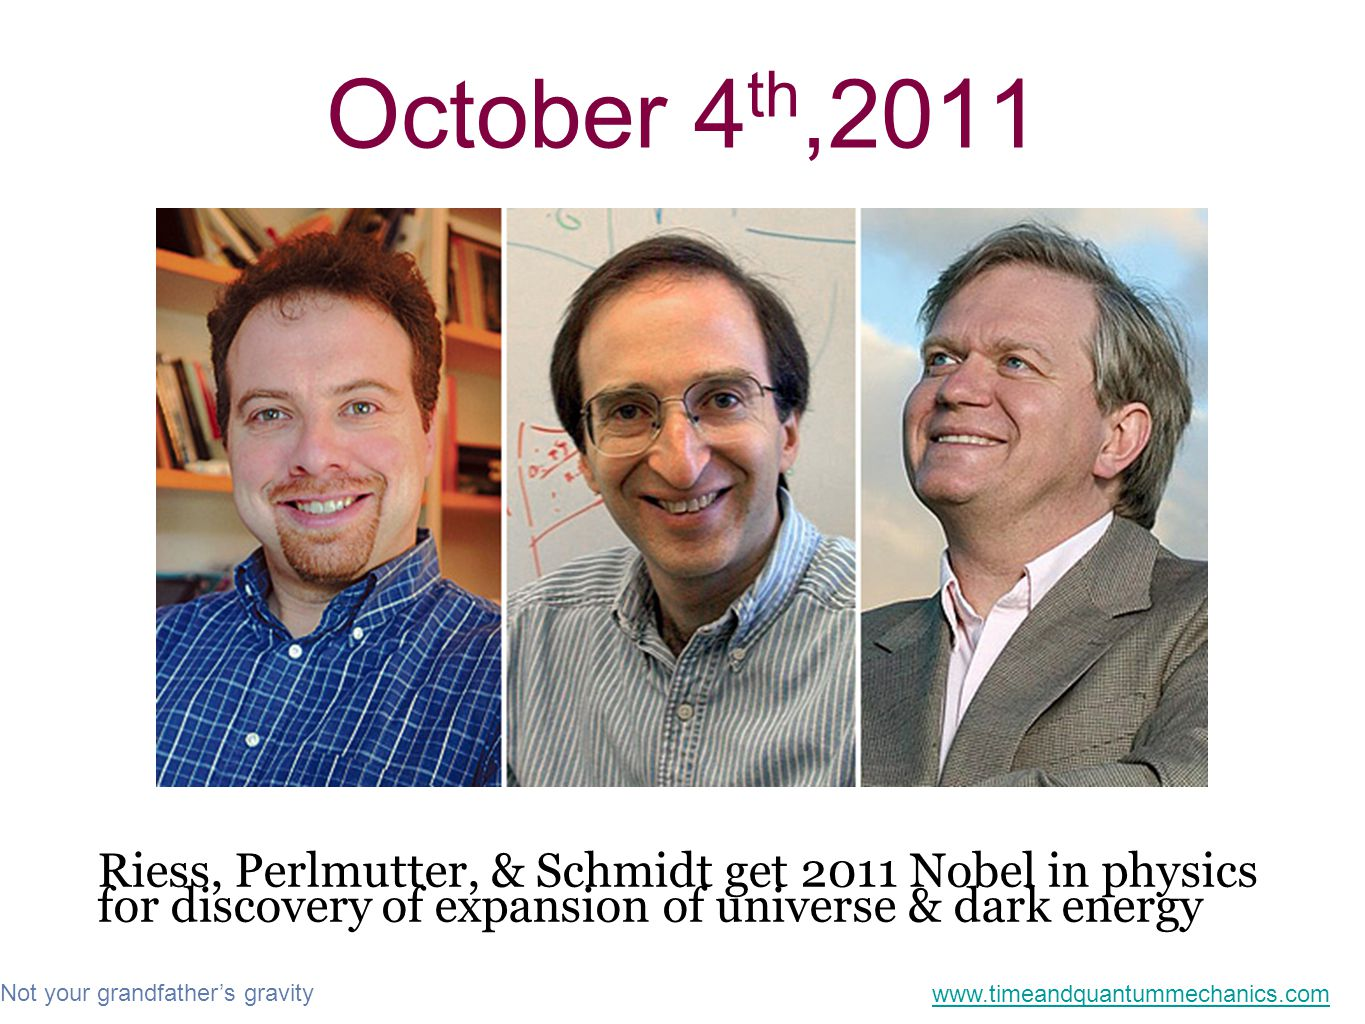 Not your grandfather's gravity www.timeandquantummechanics.com October 4 th,2011 Riess, Perlmutter, & Schmidt get 2011 Nobel in physics for discovery of expansion of universe & dark energy